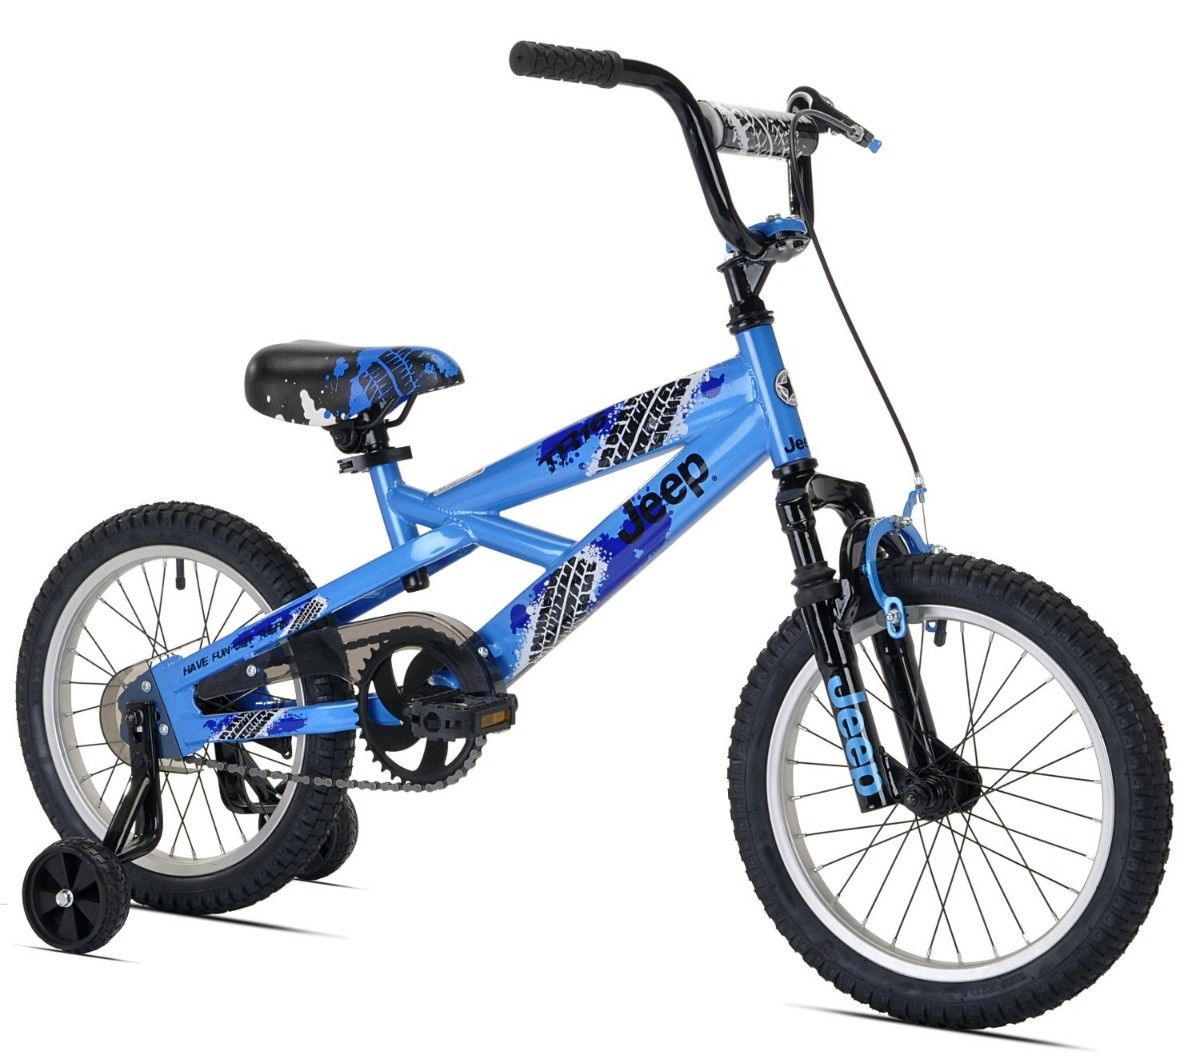 The New 16 Inch Jeep Boy S Bike Is Trail Rated For Rugged